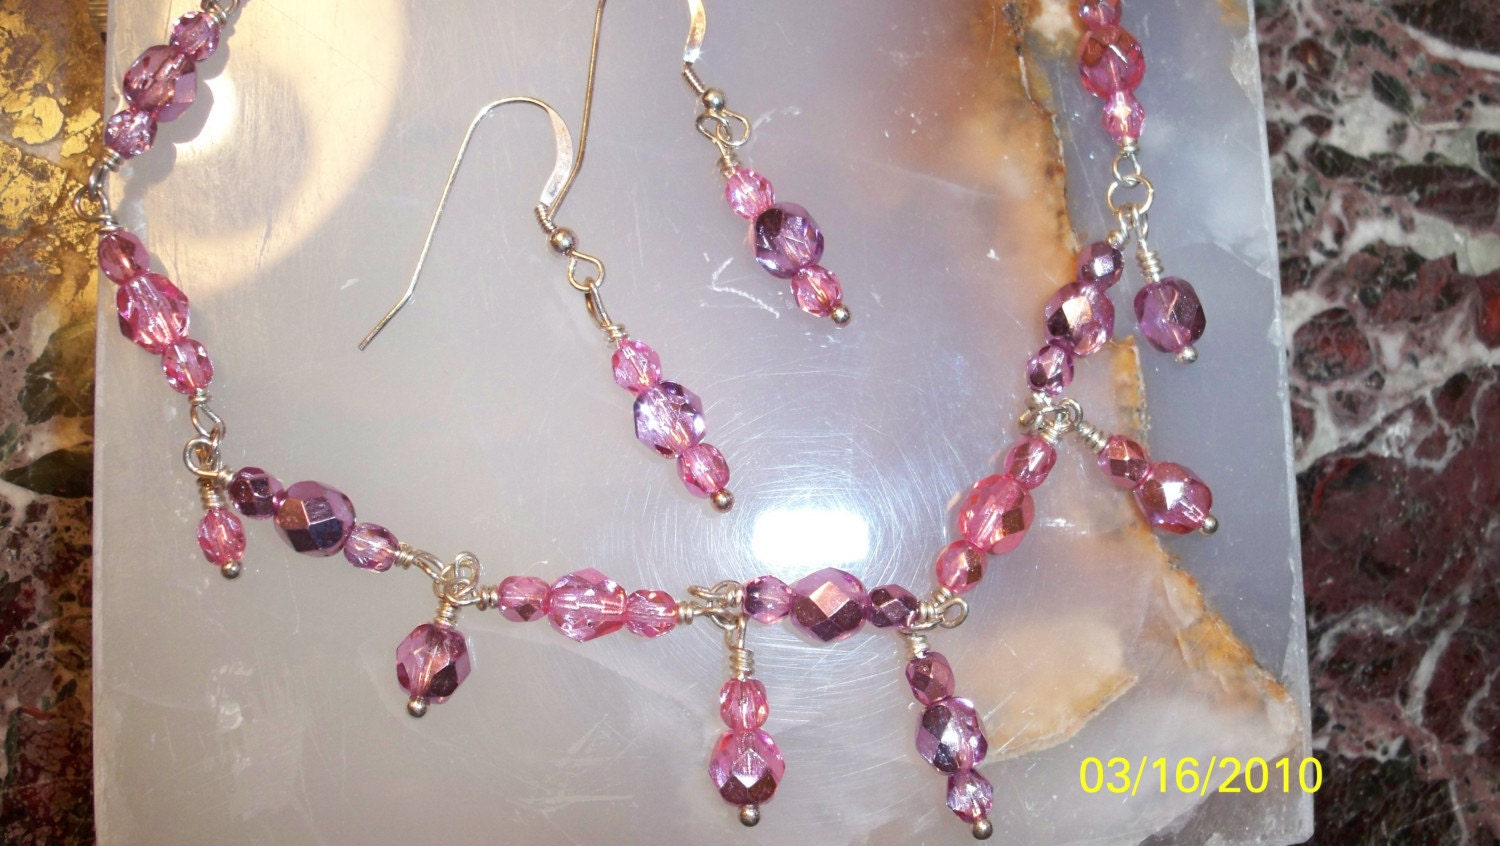 17 Inch Sterling Silver and Bright Pink and Purple Cut Glass Necklace and Earring Set